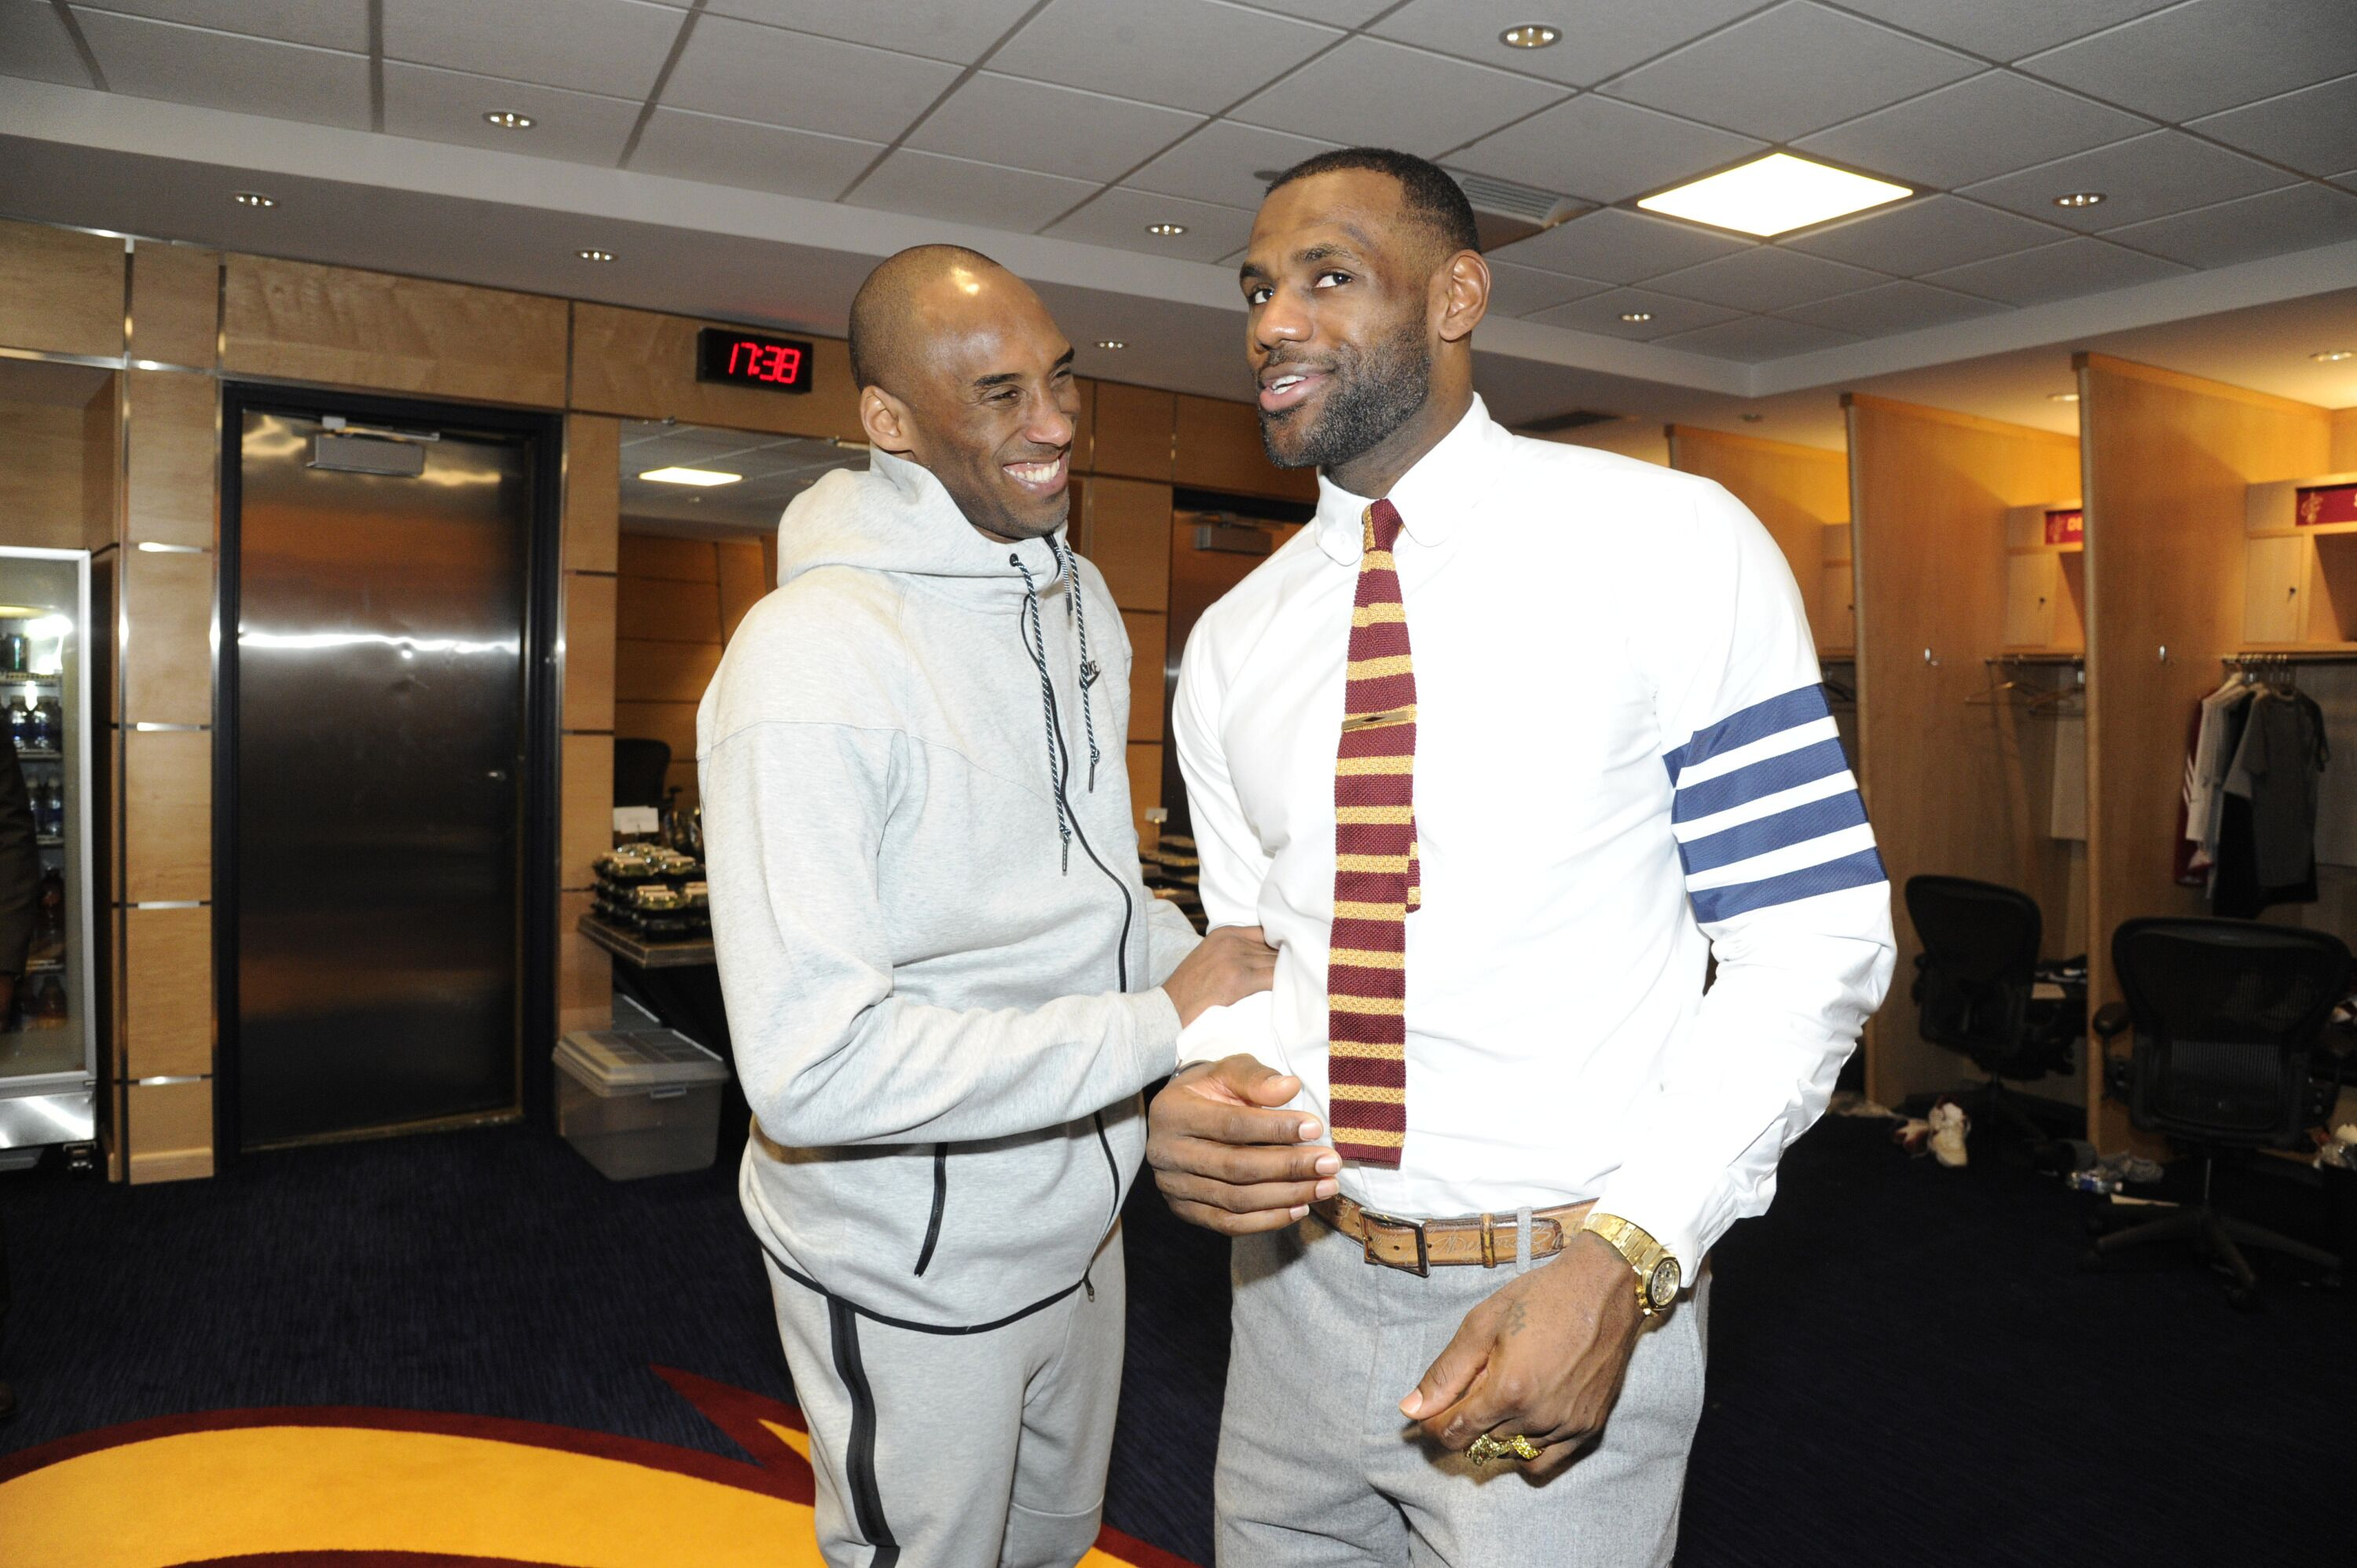 Kobe Bryant #24 of the Los Angeles Lakers greets LeBron James #23 of the Cleveland Cavaliers in the locker room after the game at The Quicken Loans Arena in Cleveland, Ohio | Photo: Getty Images